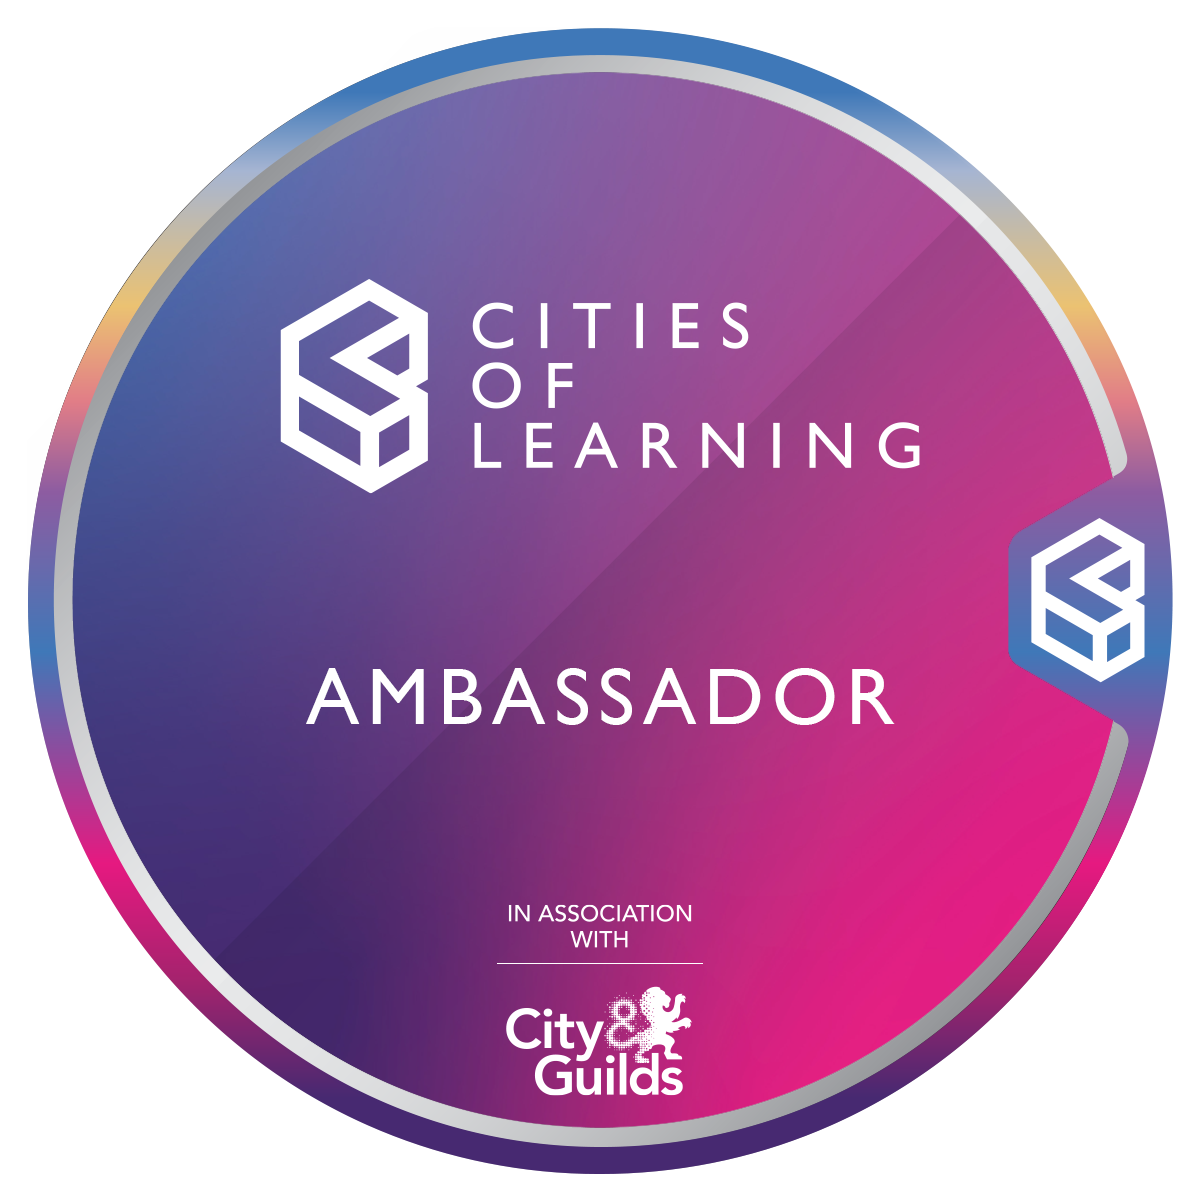 Cities of Learning Programme Ambassador